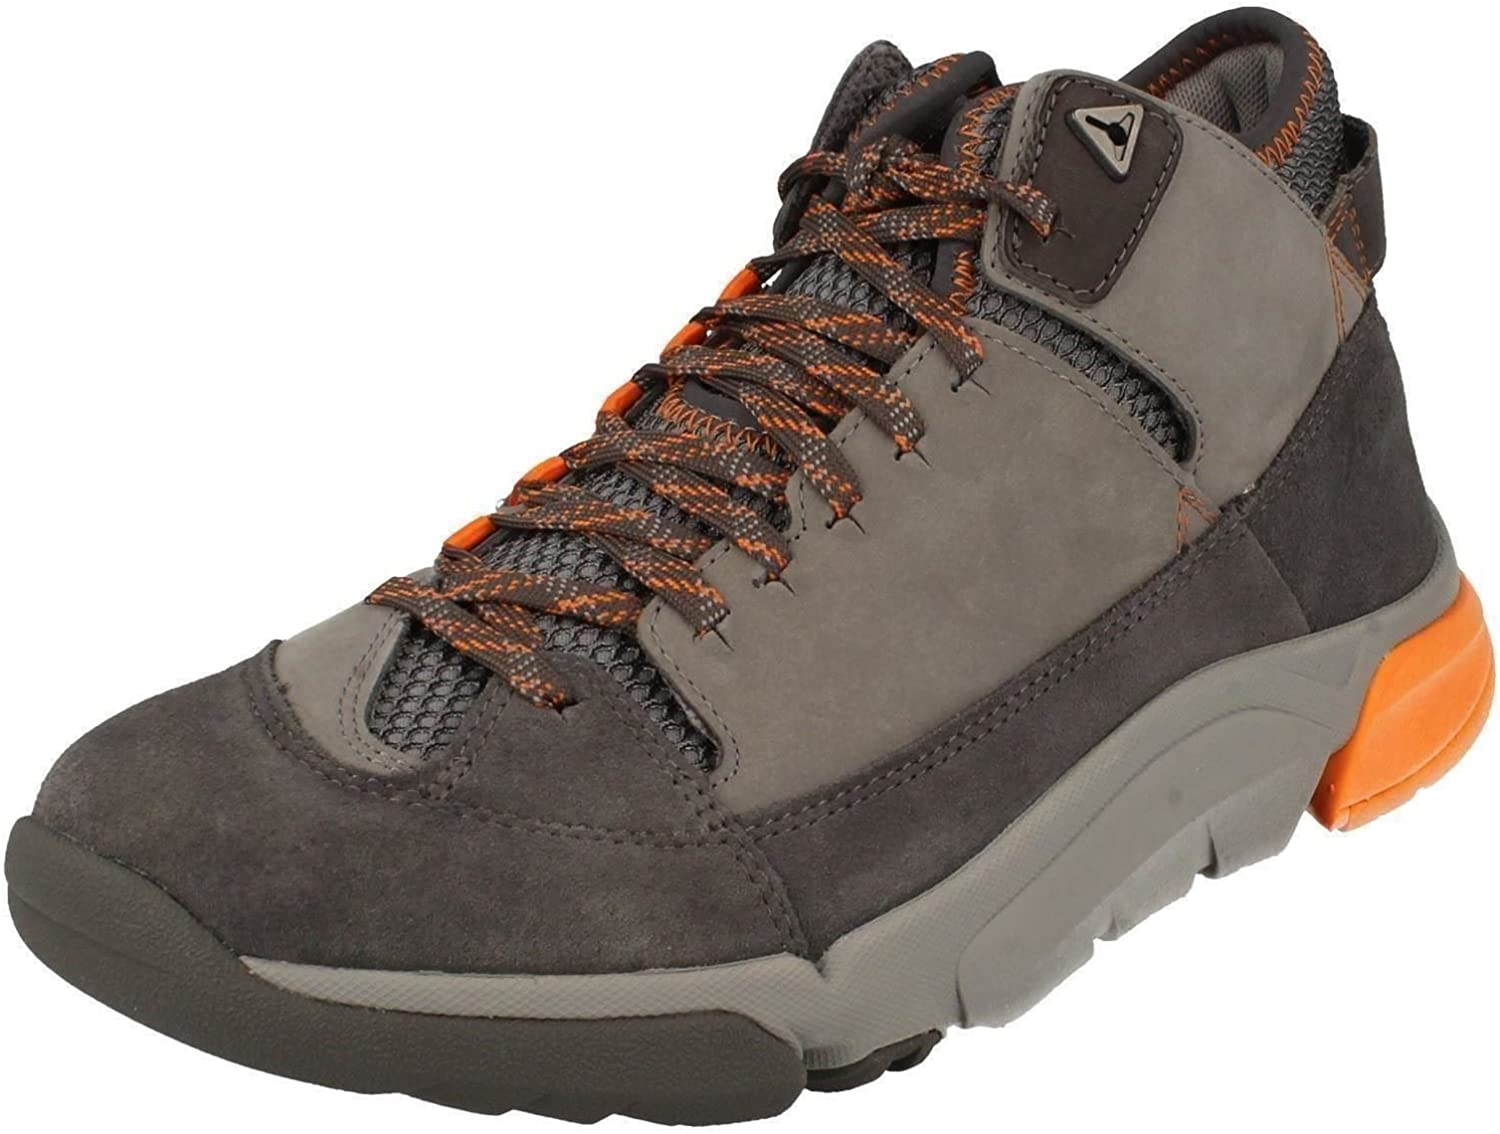 Clarks Men's Outdoor Ankle Boots Tri Outflex